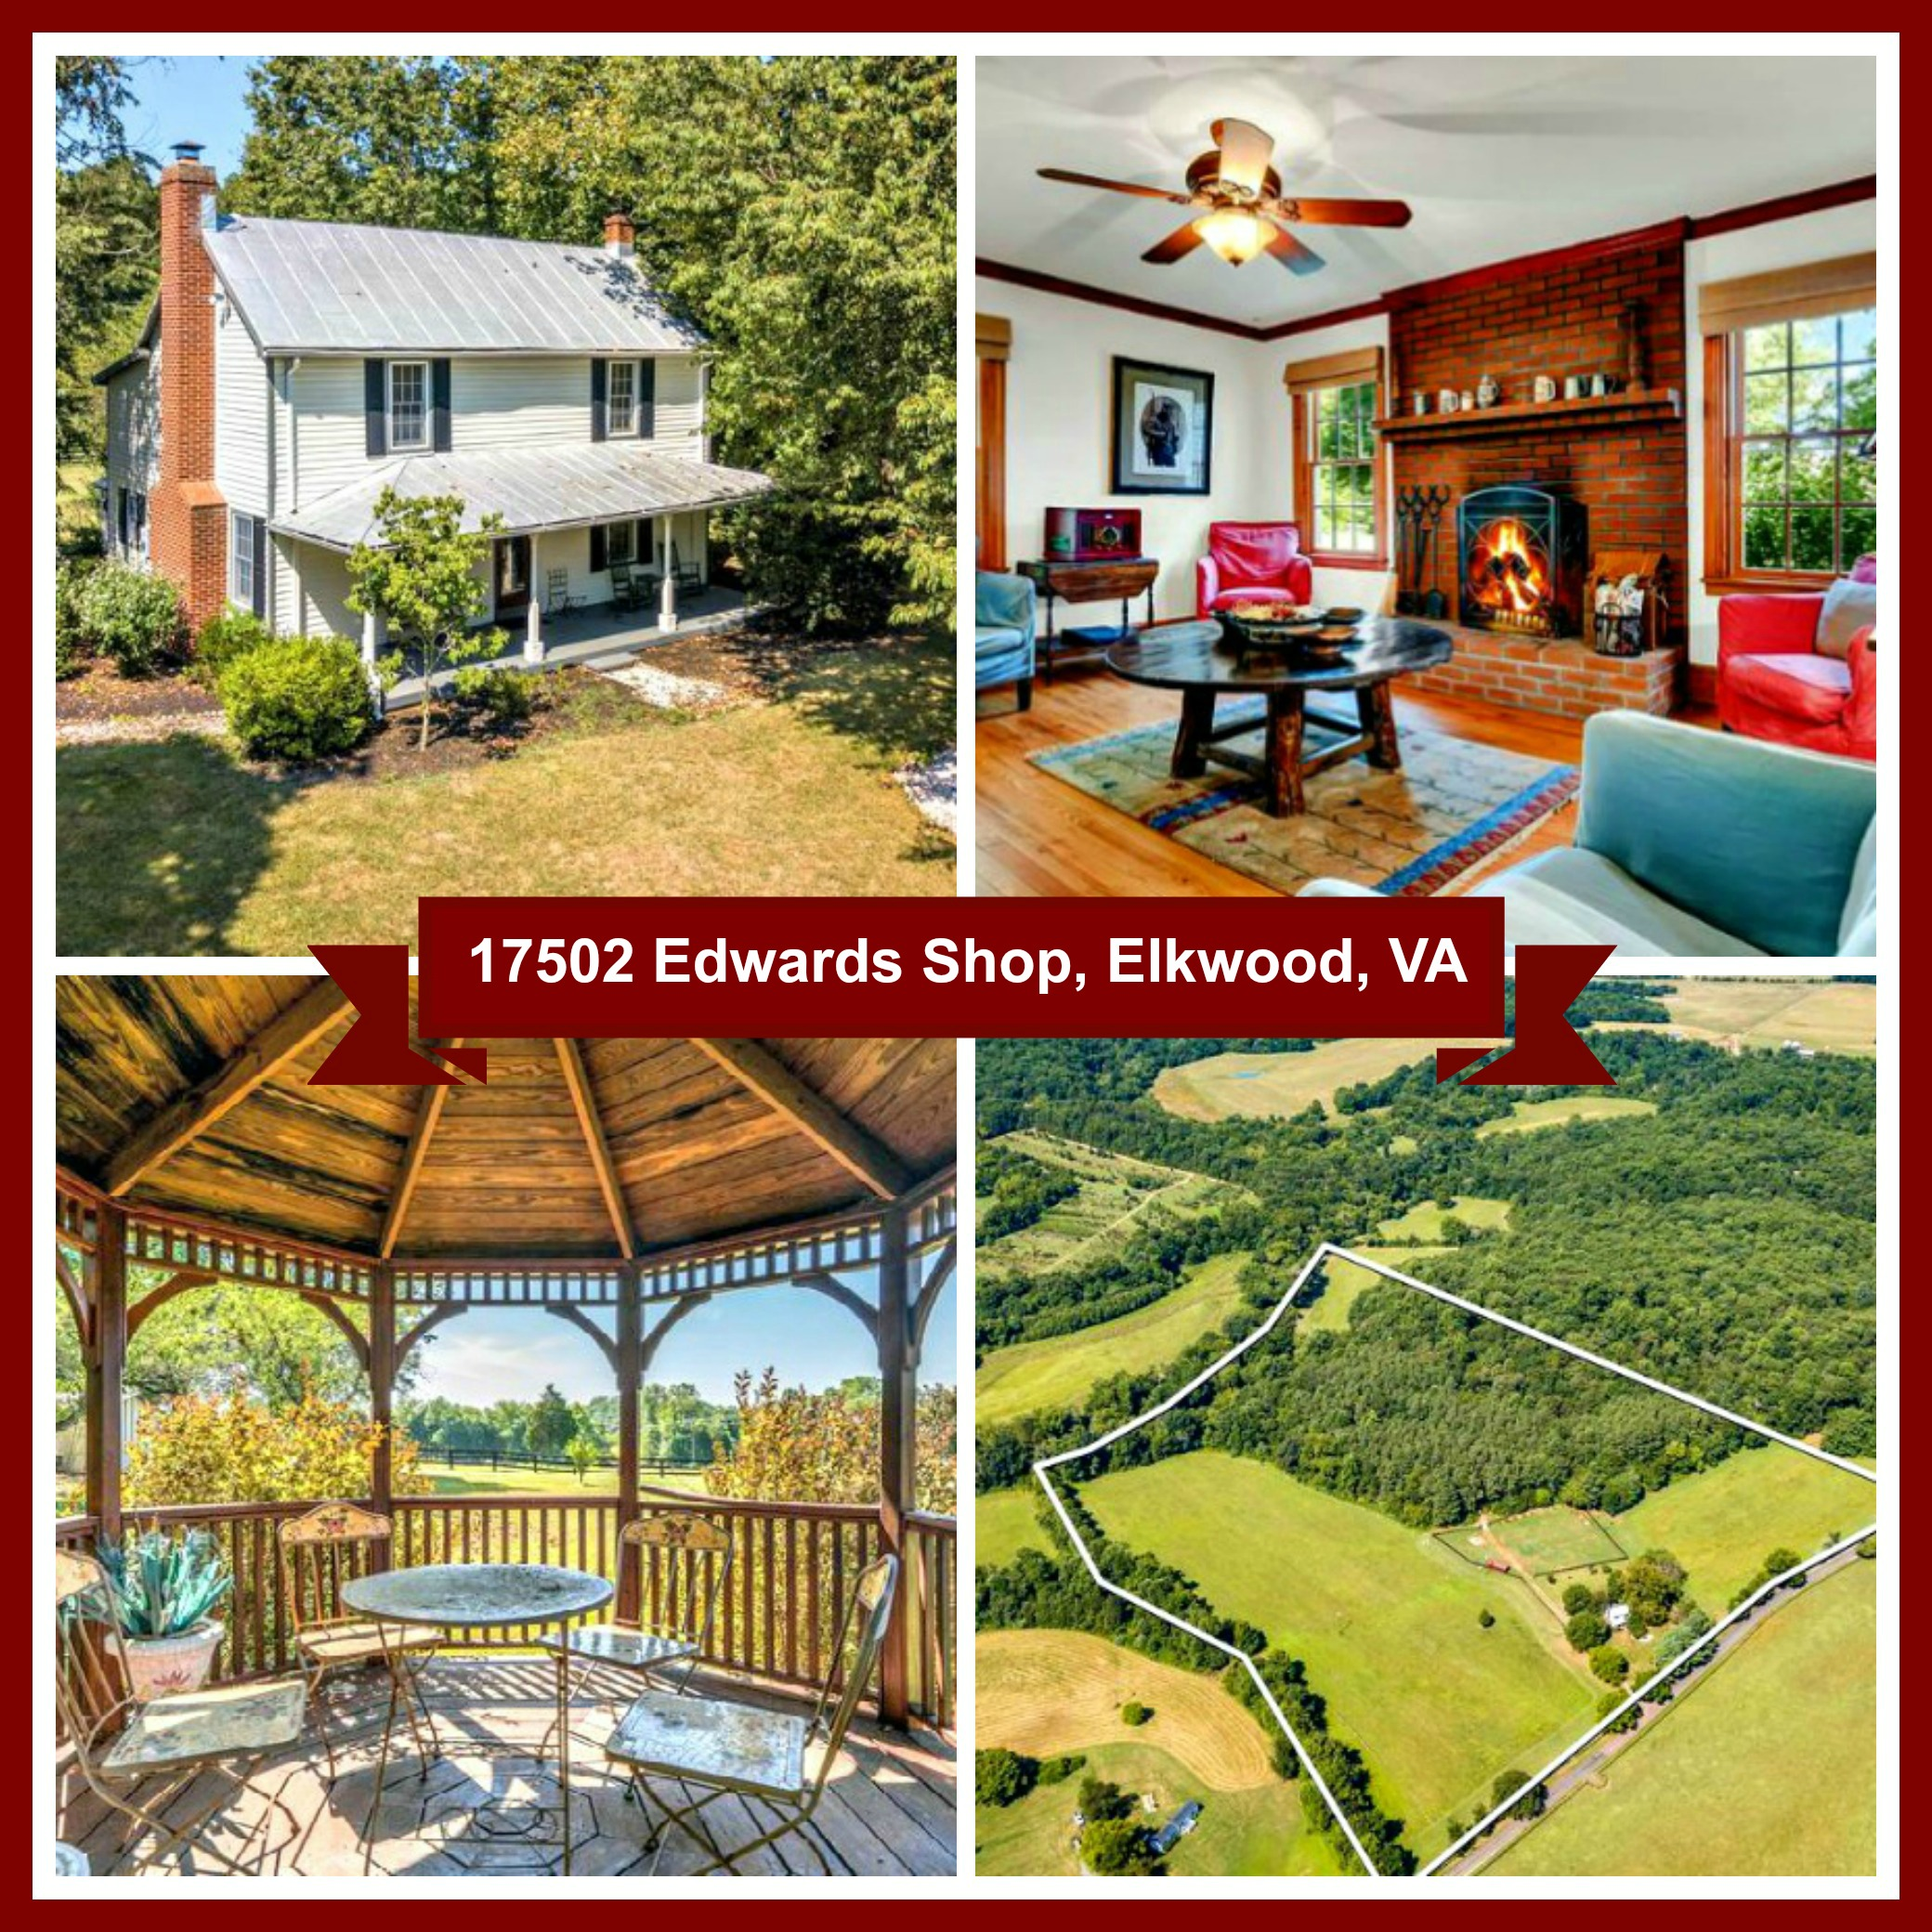 Image title17502 Edwards Shop, Elkwood, VA for Sale B&B